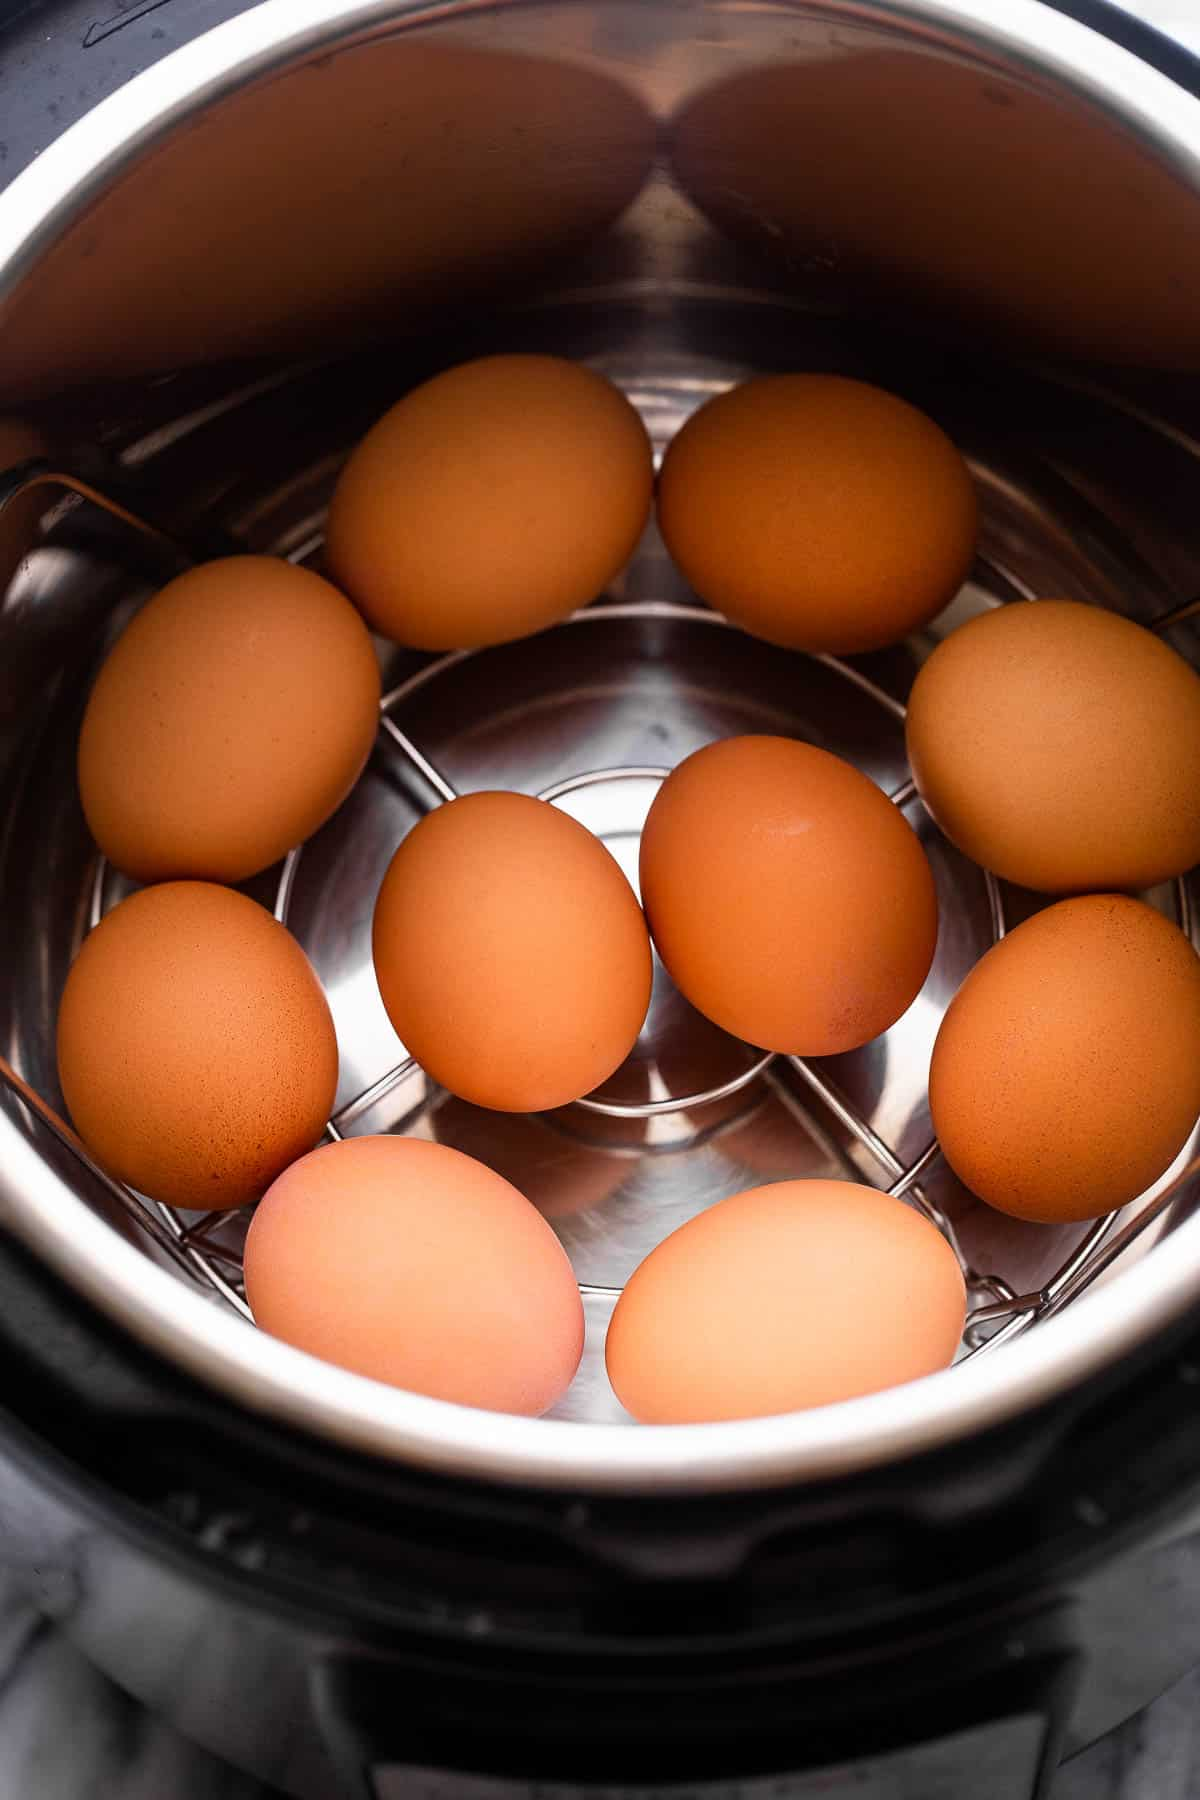 brown eggs arranged inside the instant pot